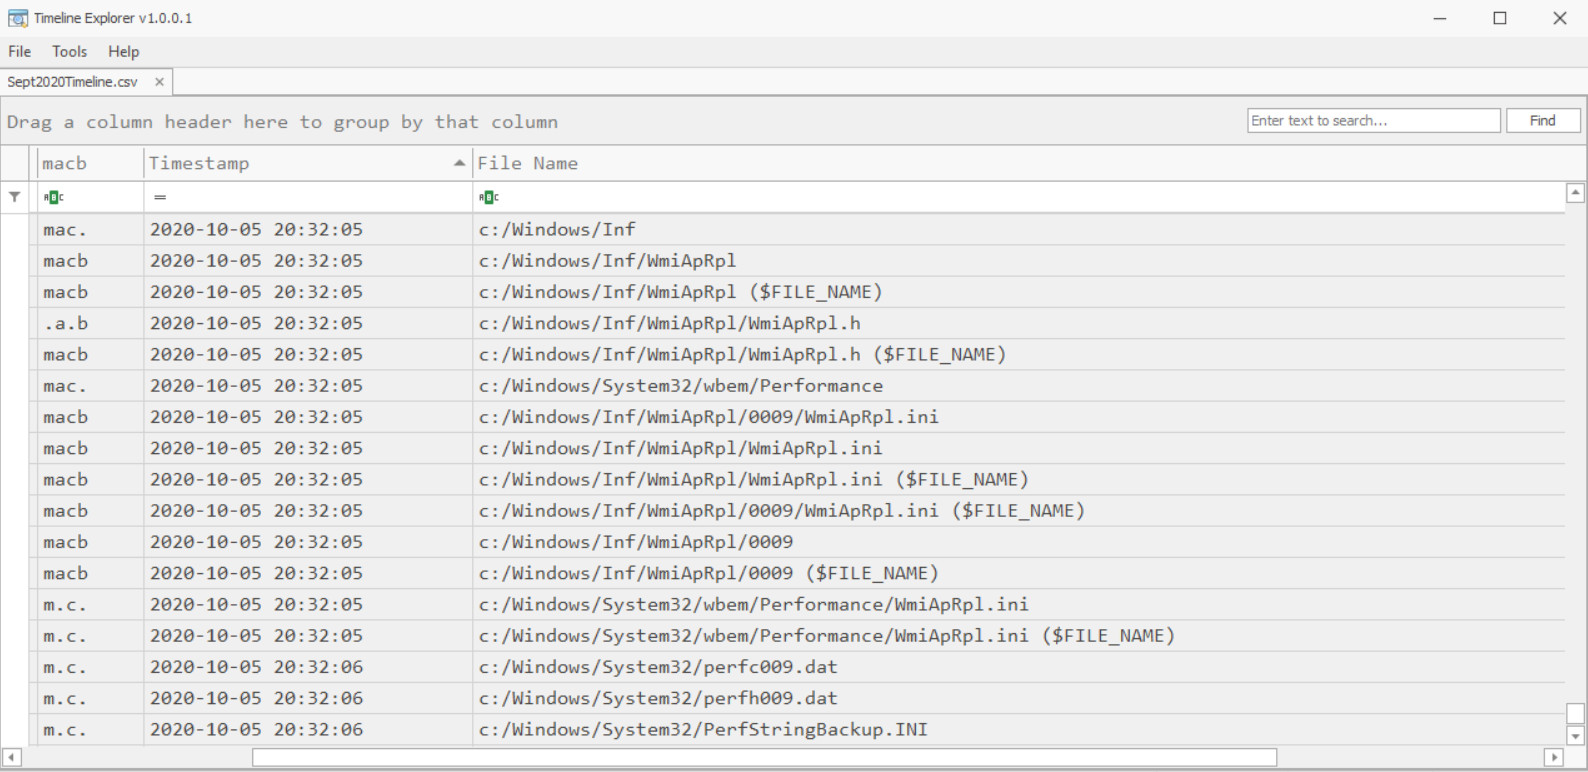 file system forensic analysis output